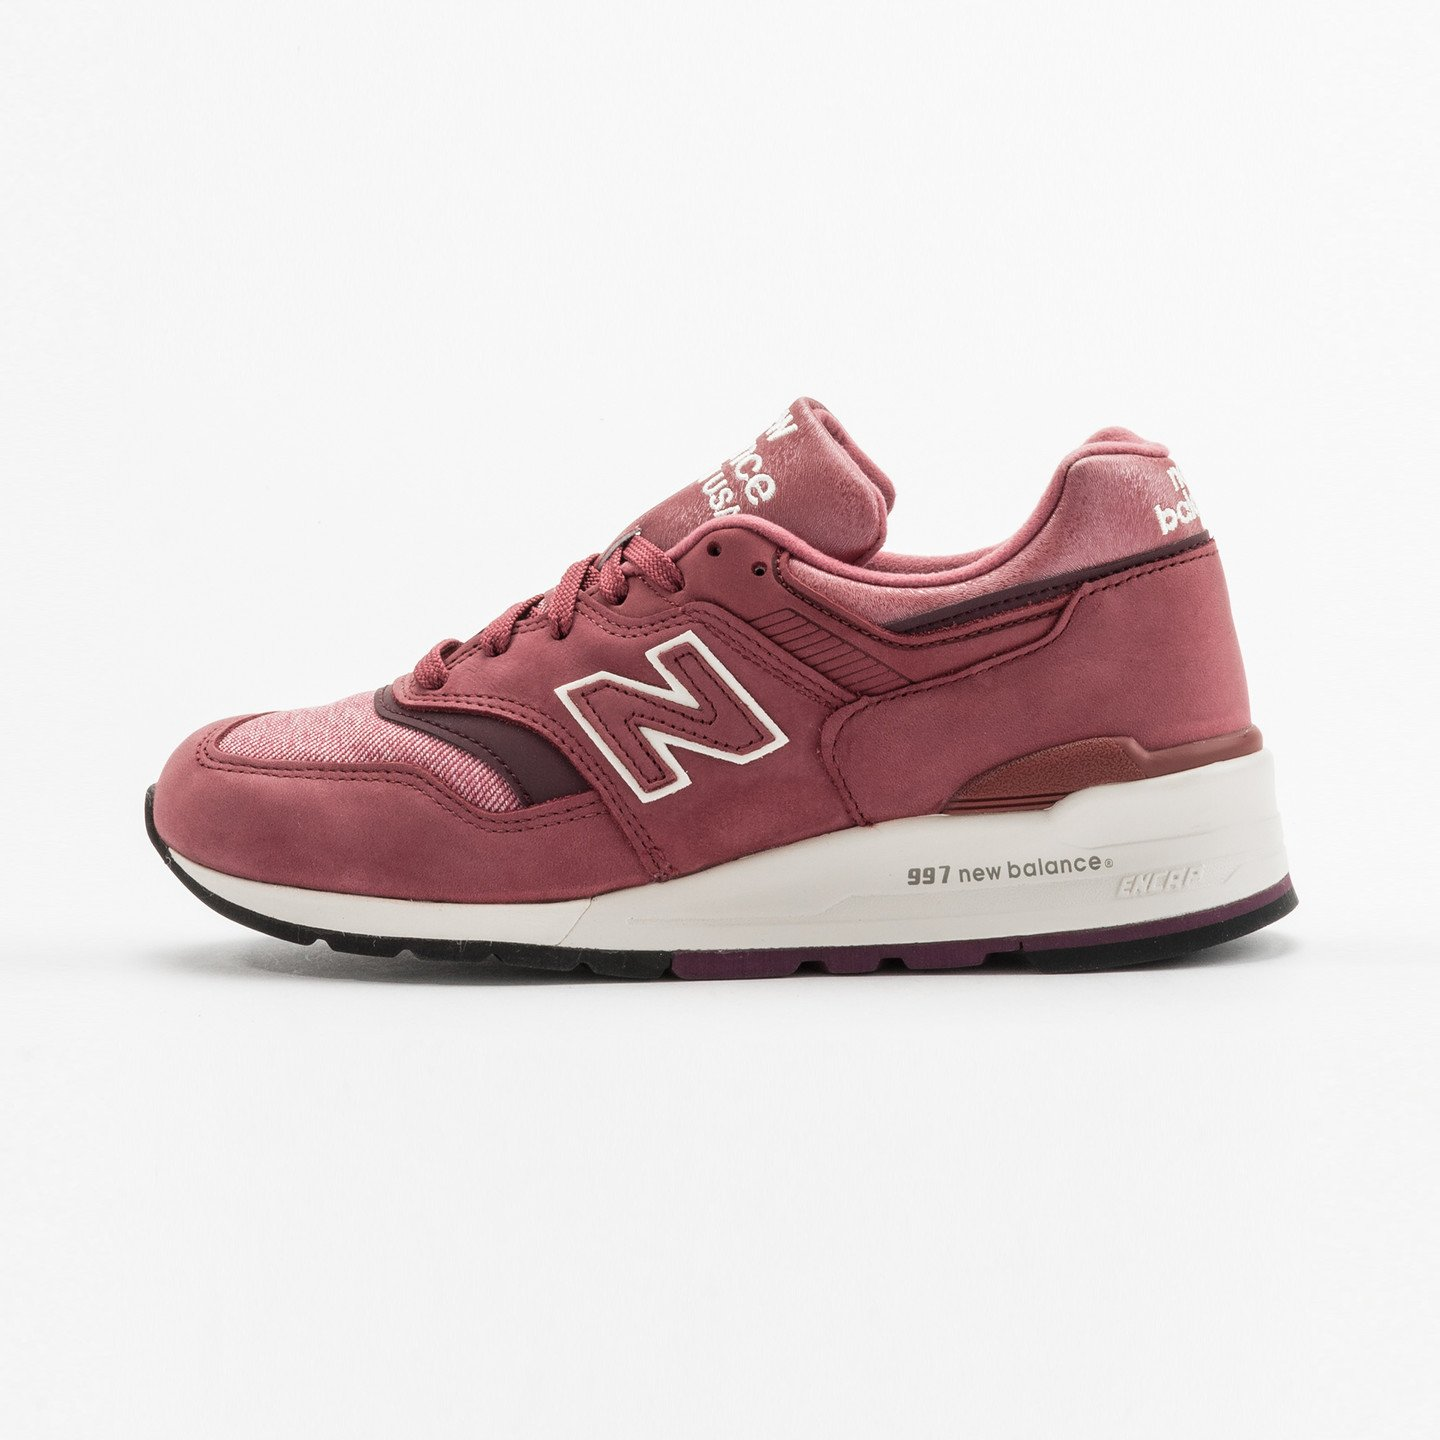 New Balance W997 - Made in USA Red / Chalk White W997ER